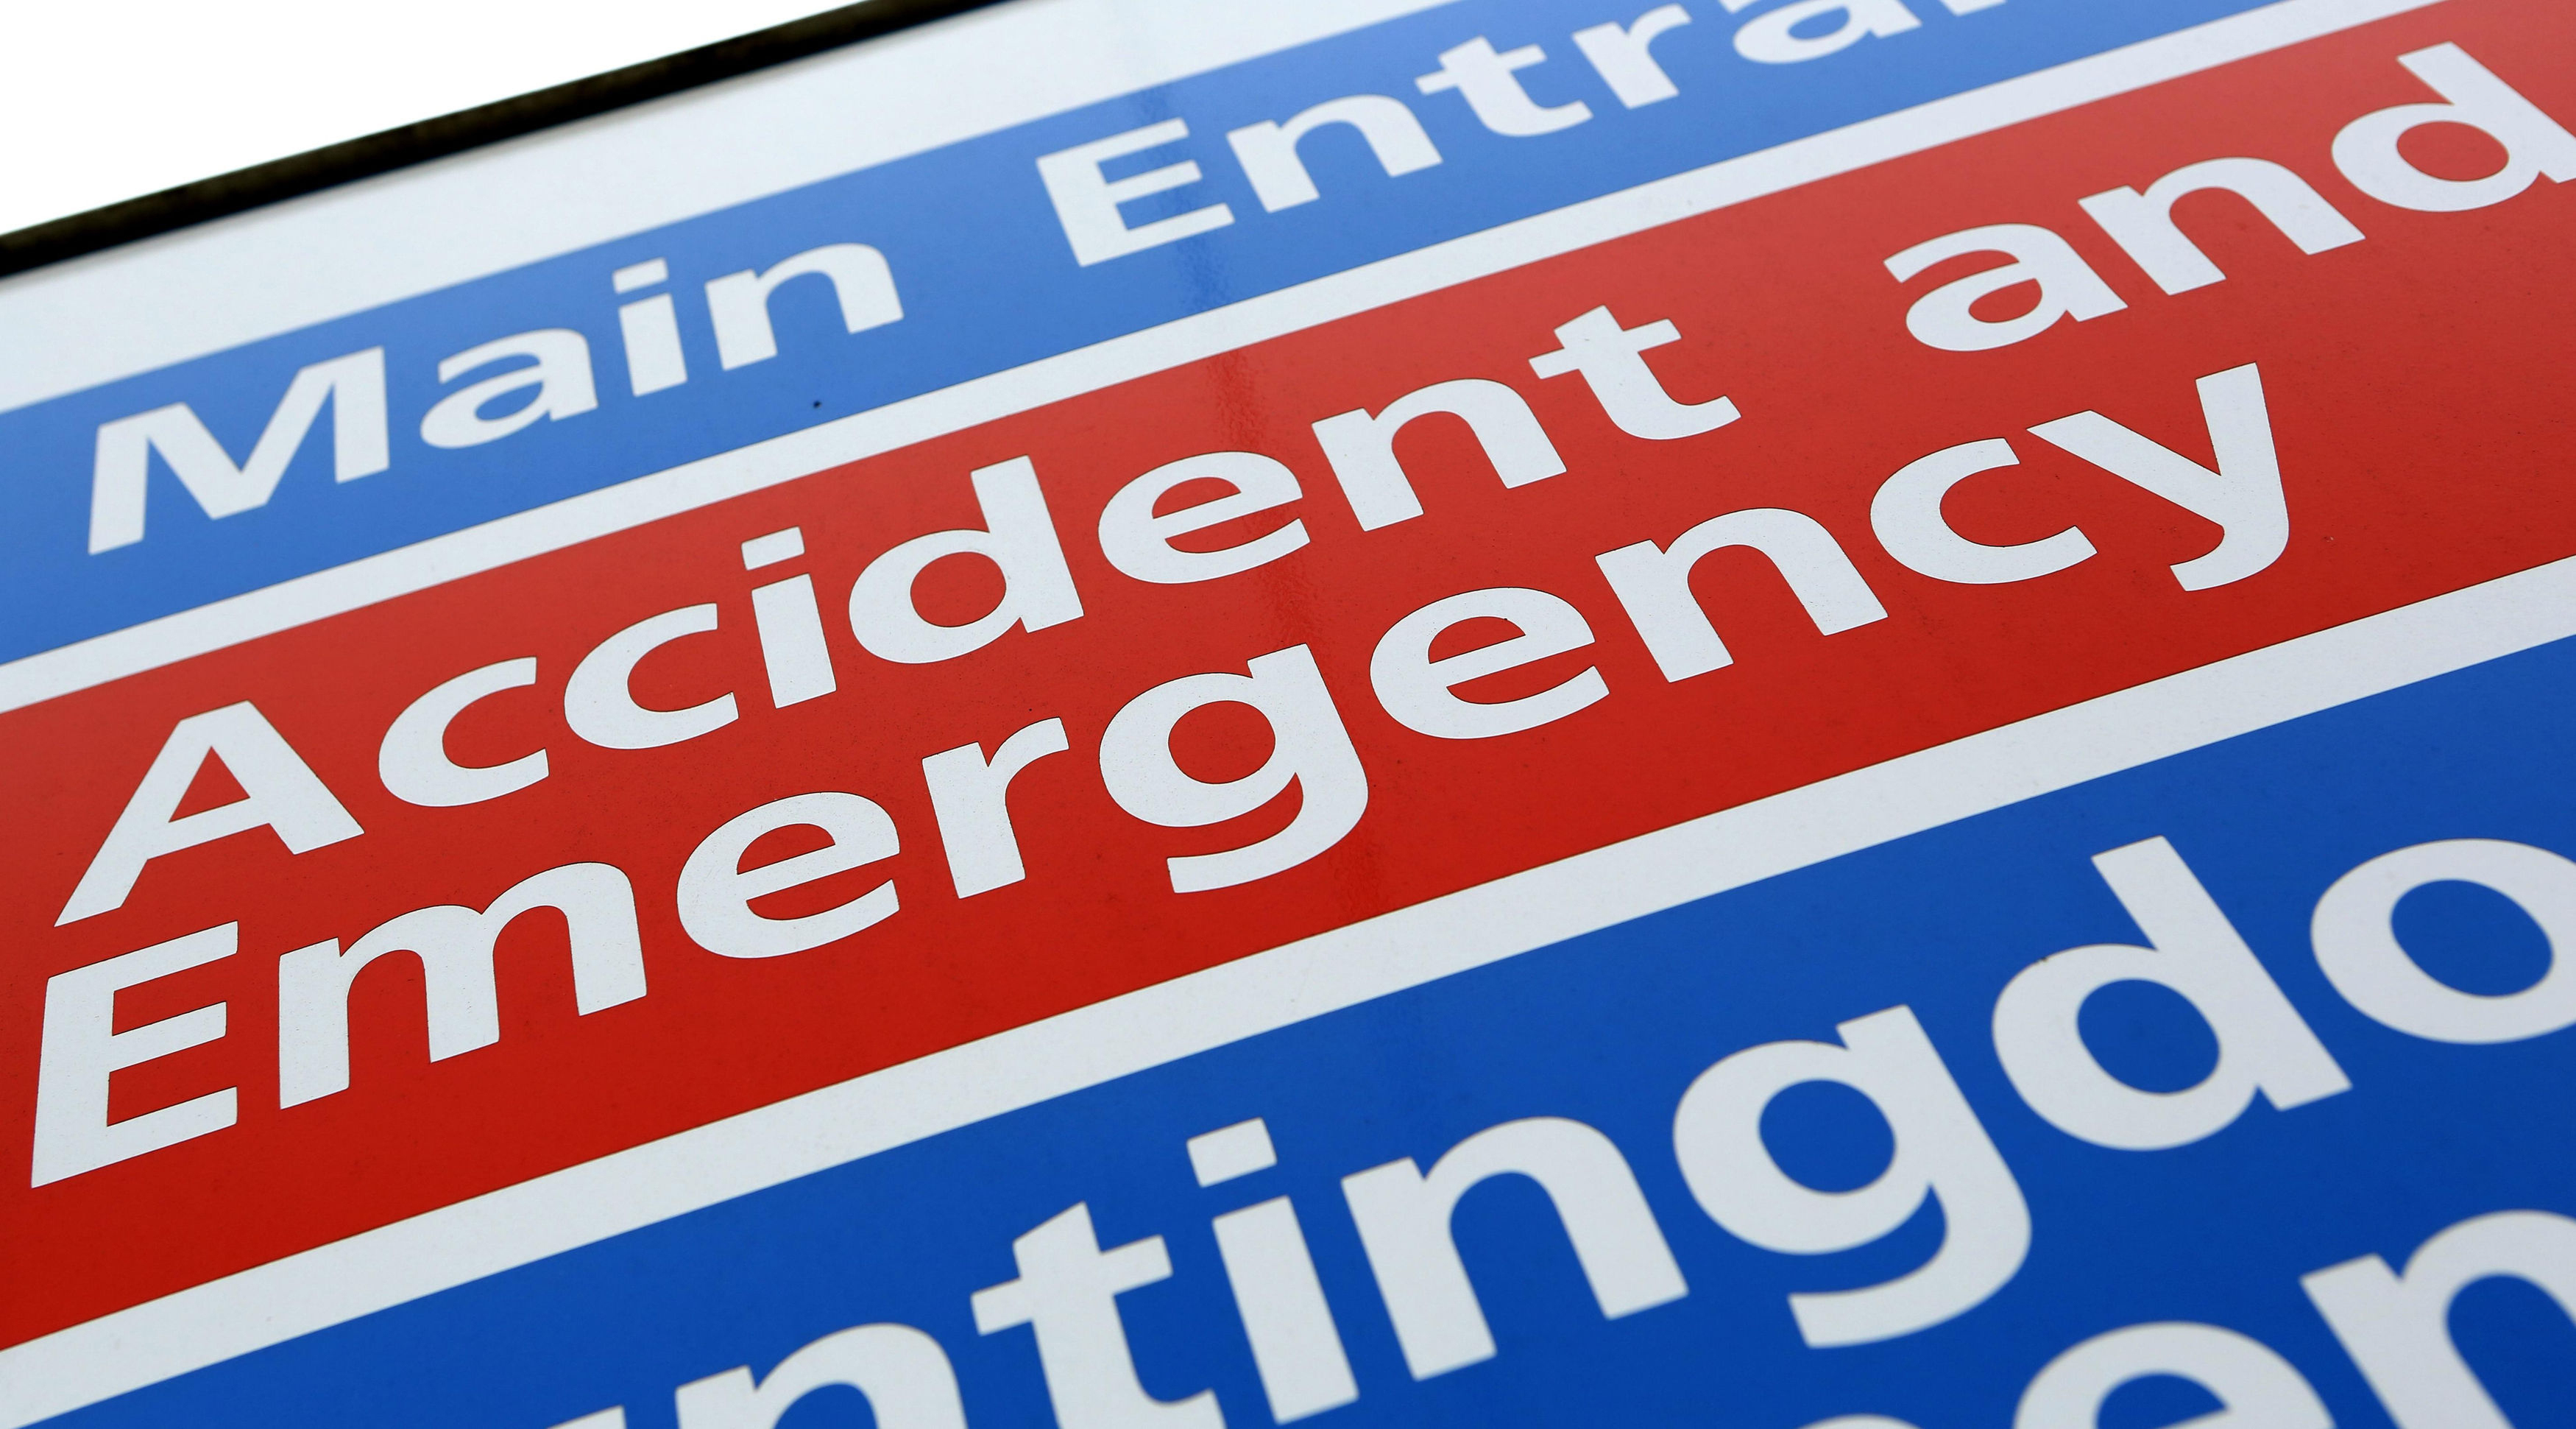 Latest Pharmacy News: NHS records its worst A&E waiting times since 2004